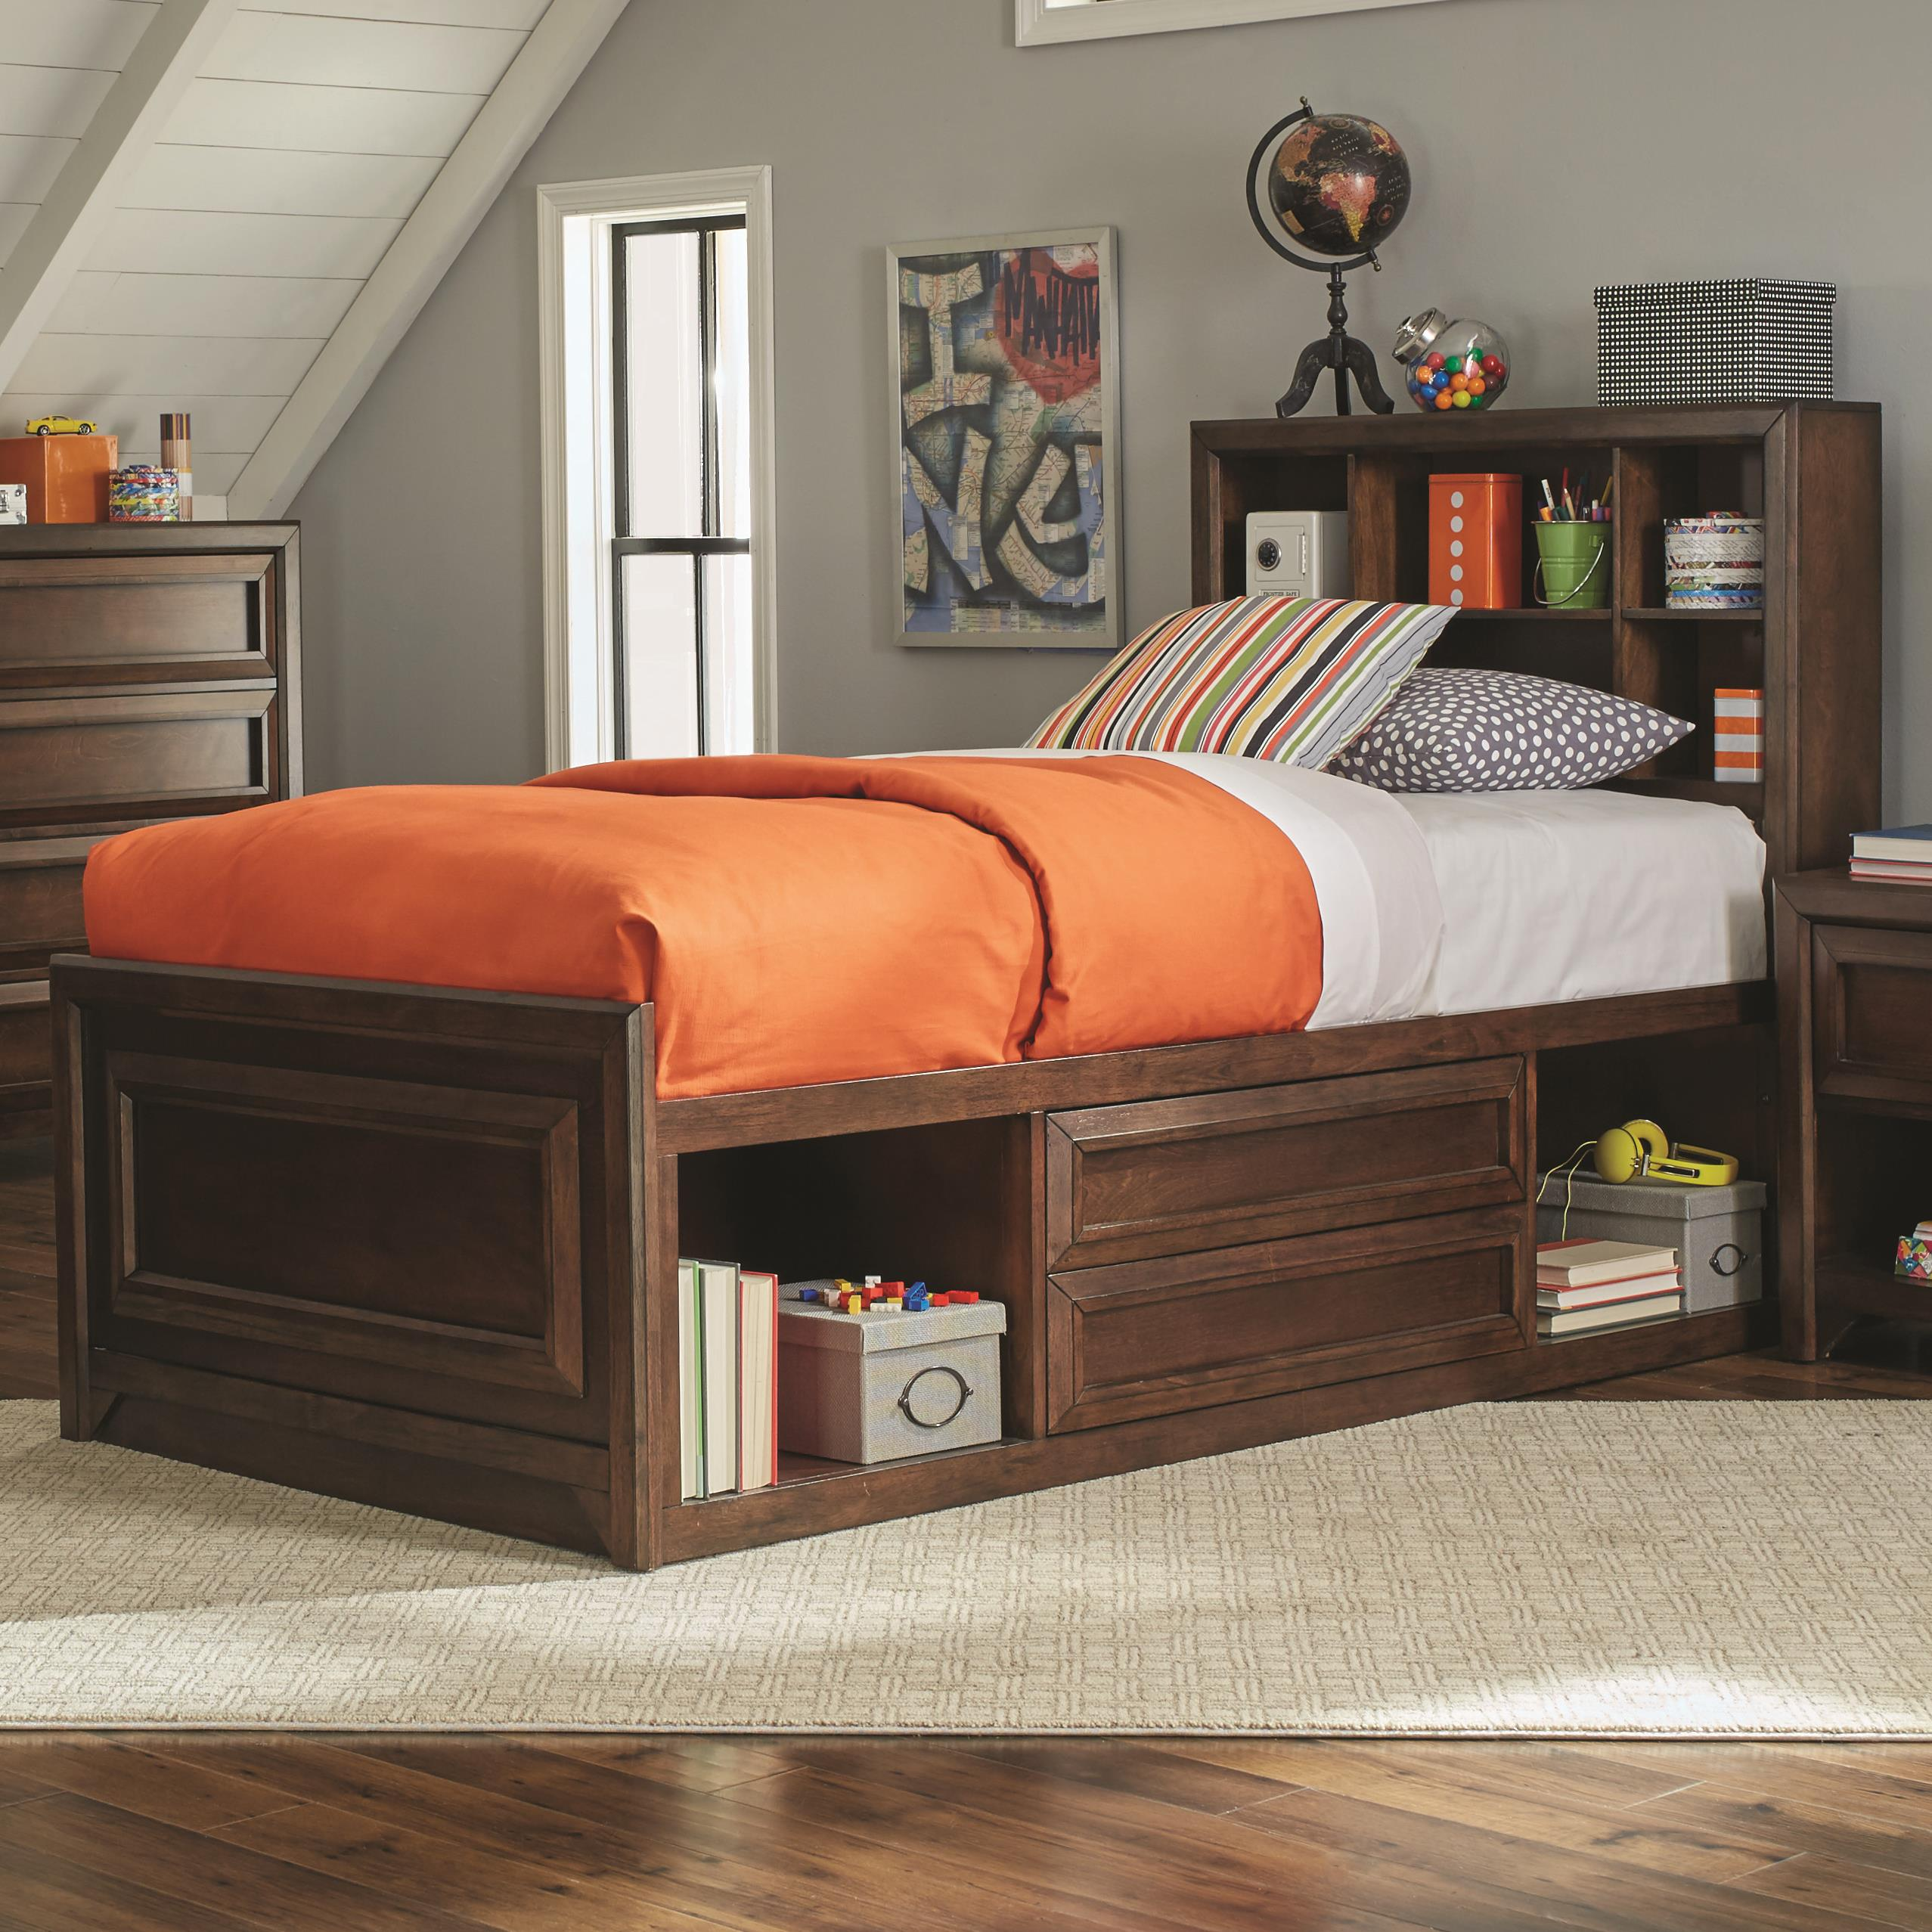 Coaster Greenough 400820t Twin Bed Northeast Factory